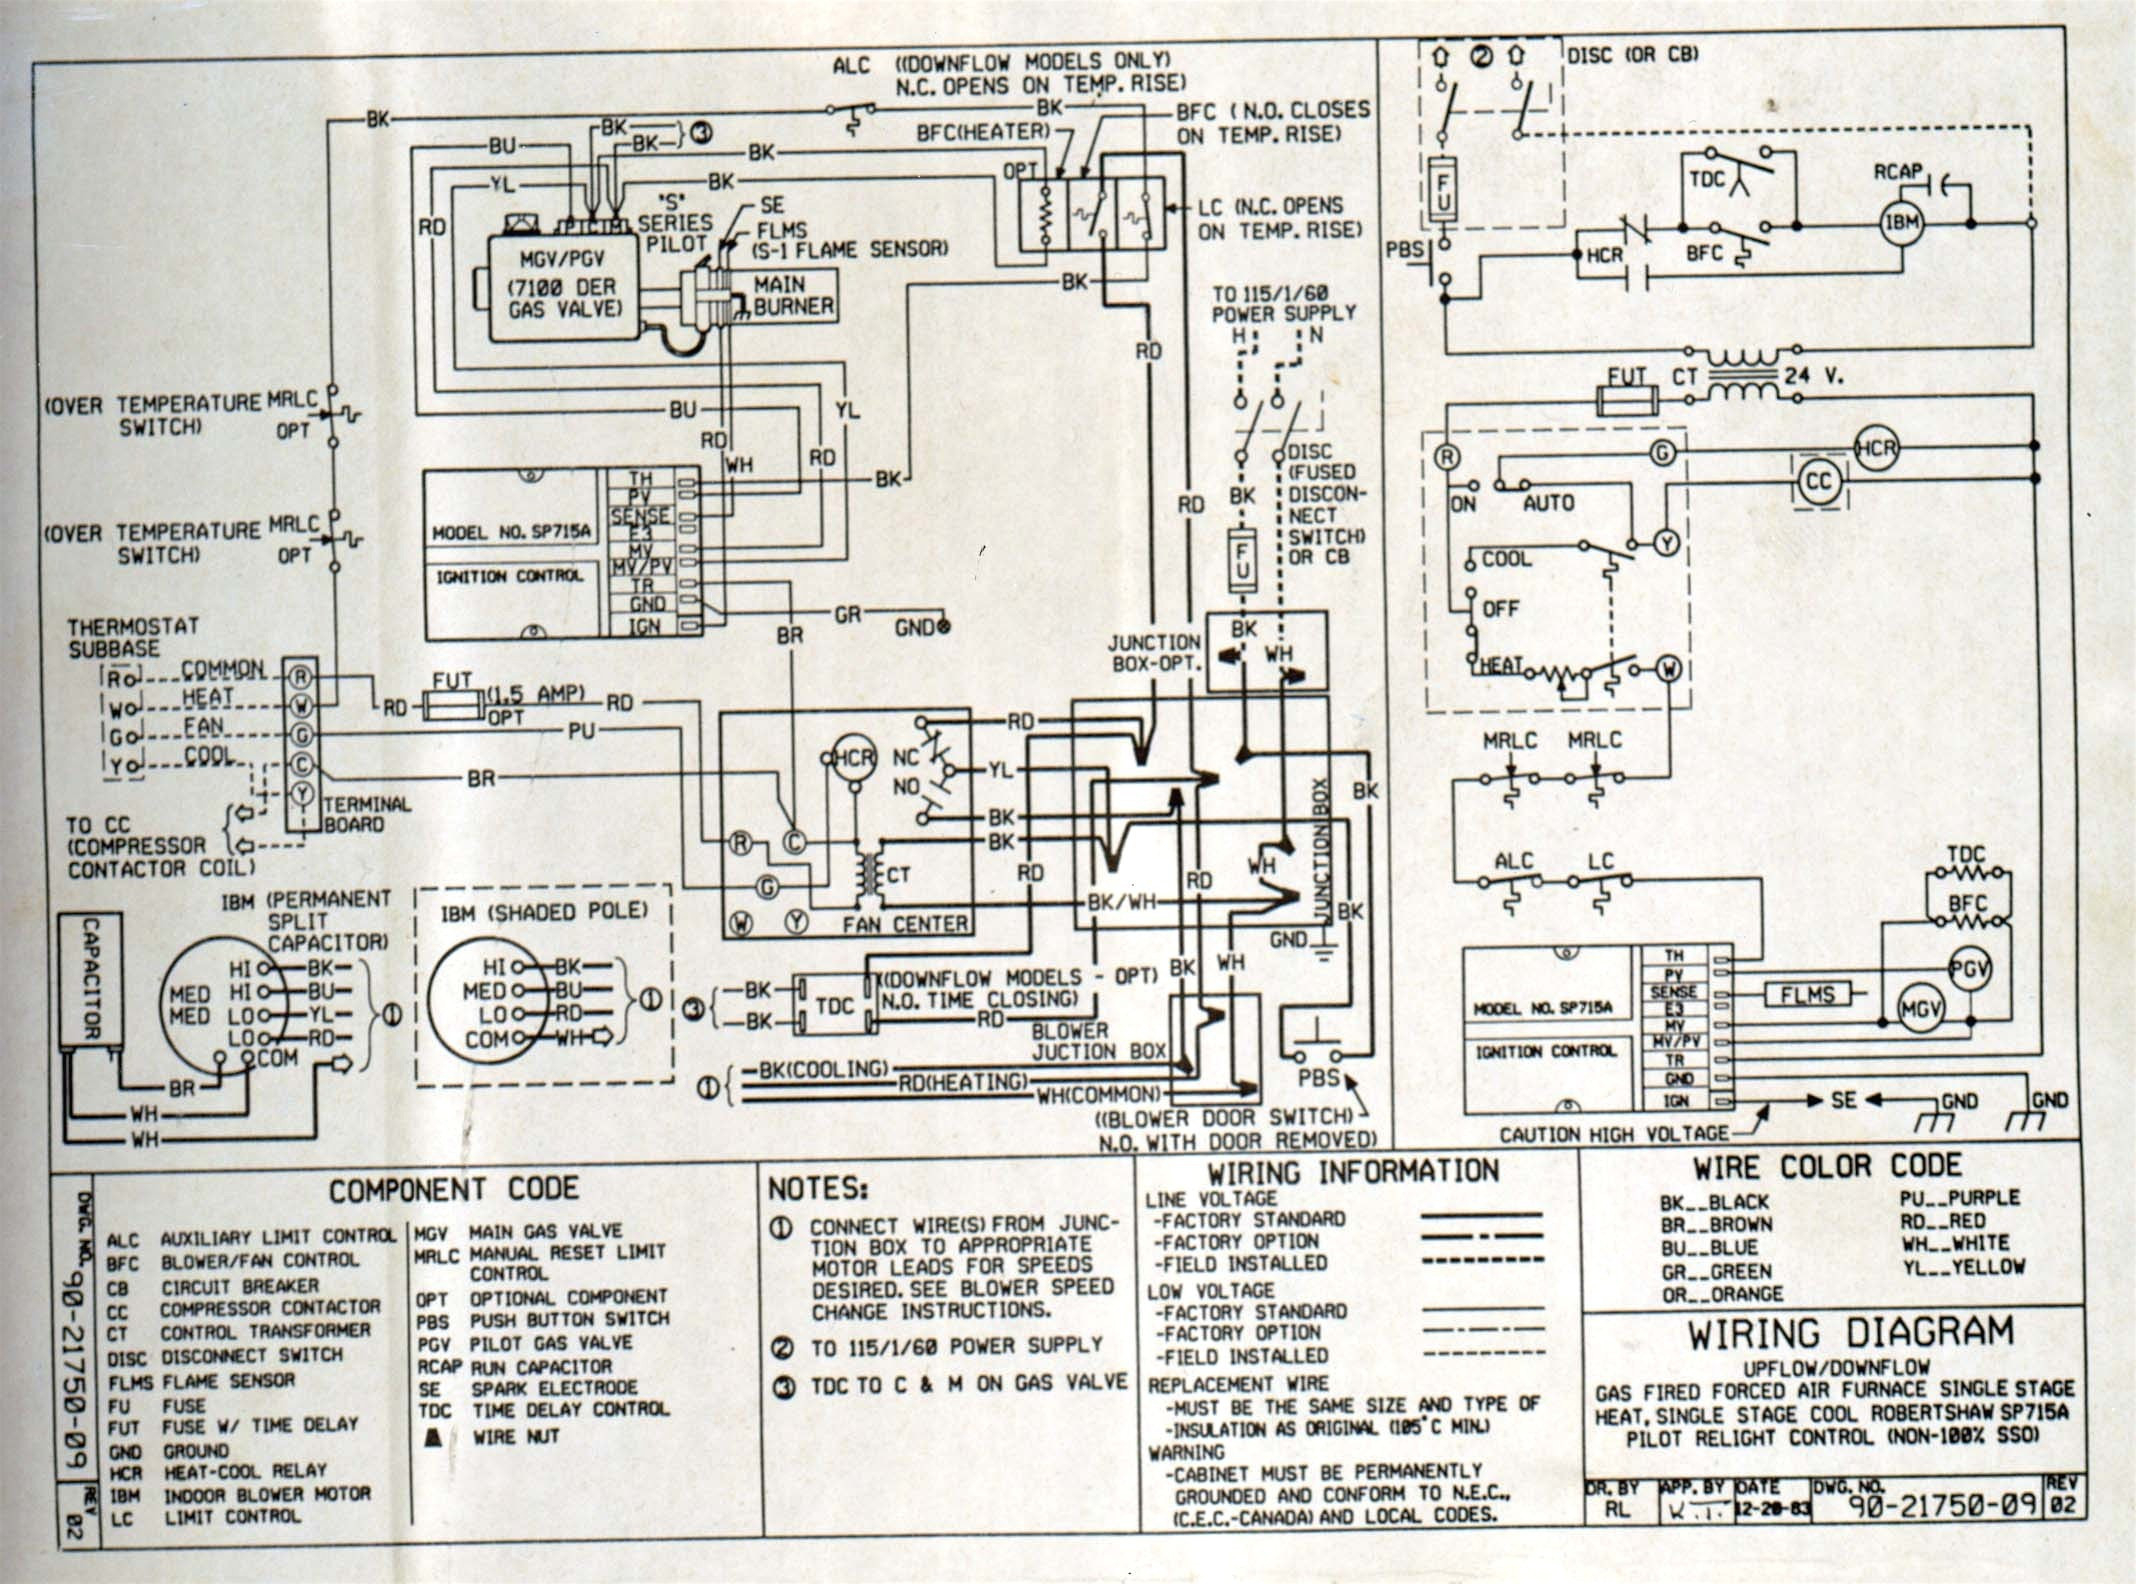 goodman heat pump wiring diagram Download-Goodman Gas Pack Wiring Diagram Data Beautiful Heat Pump Package Unit 7-j